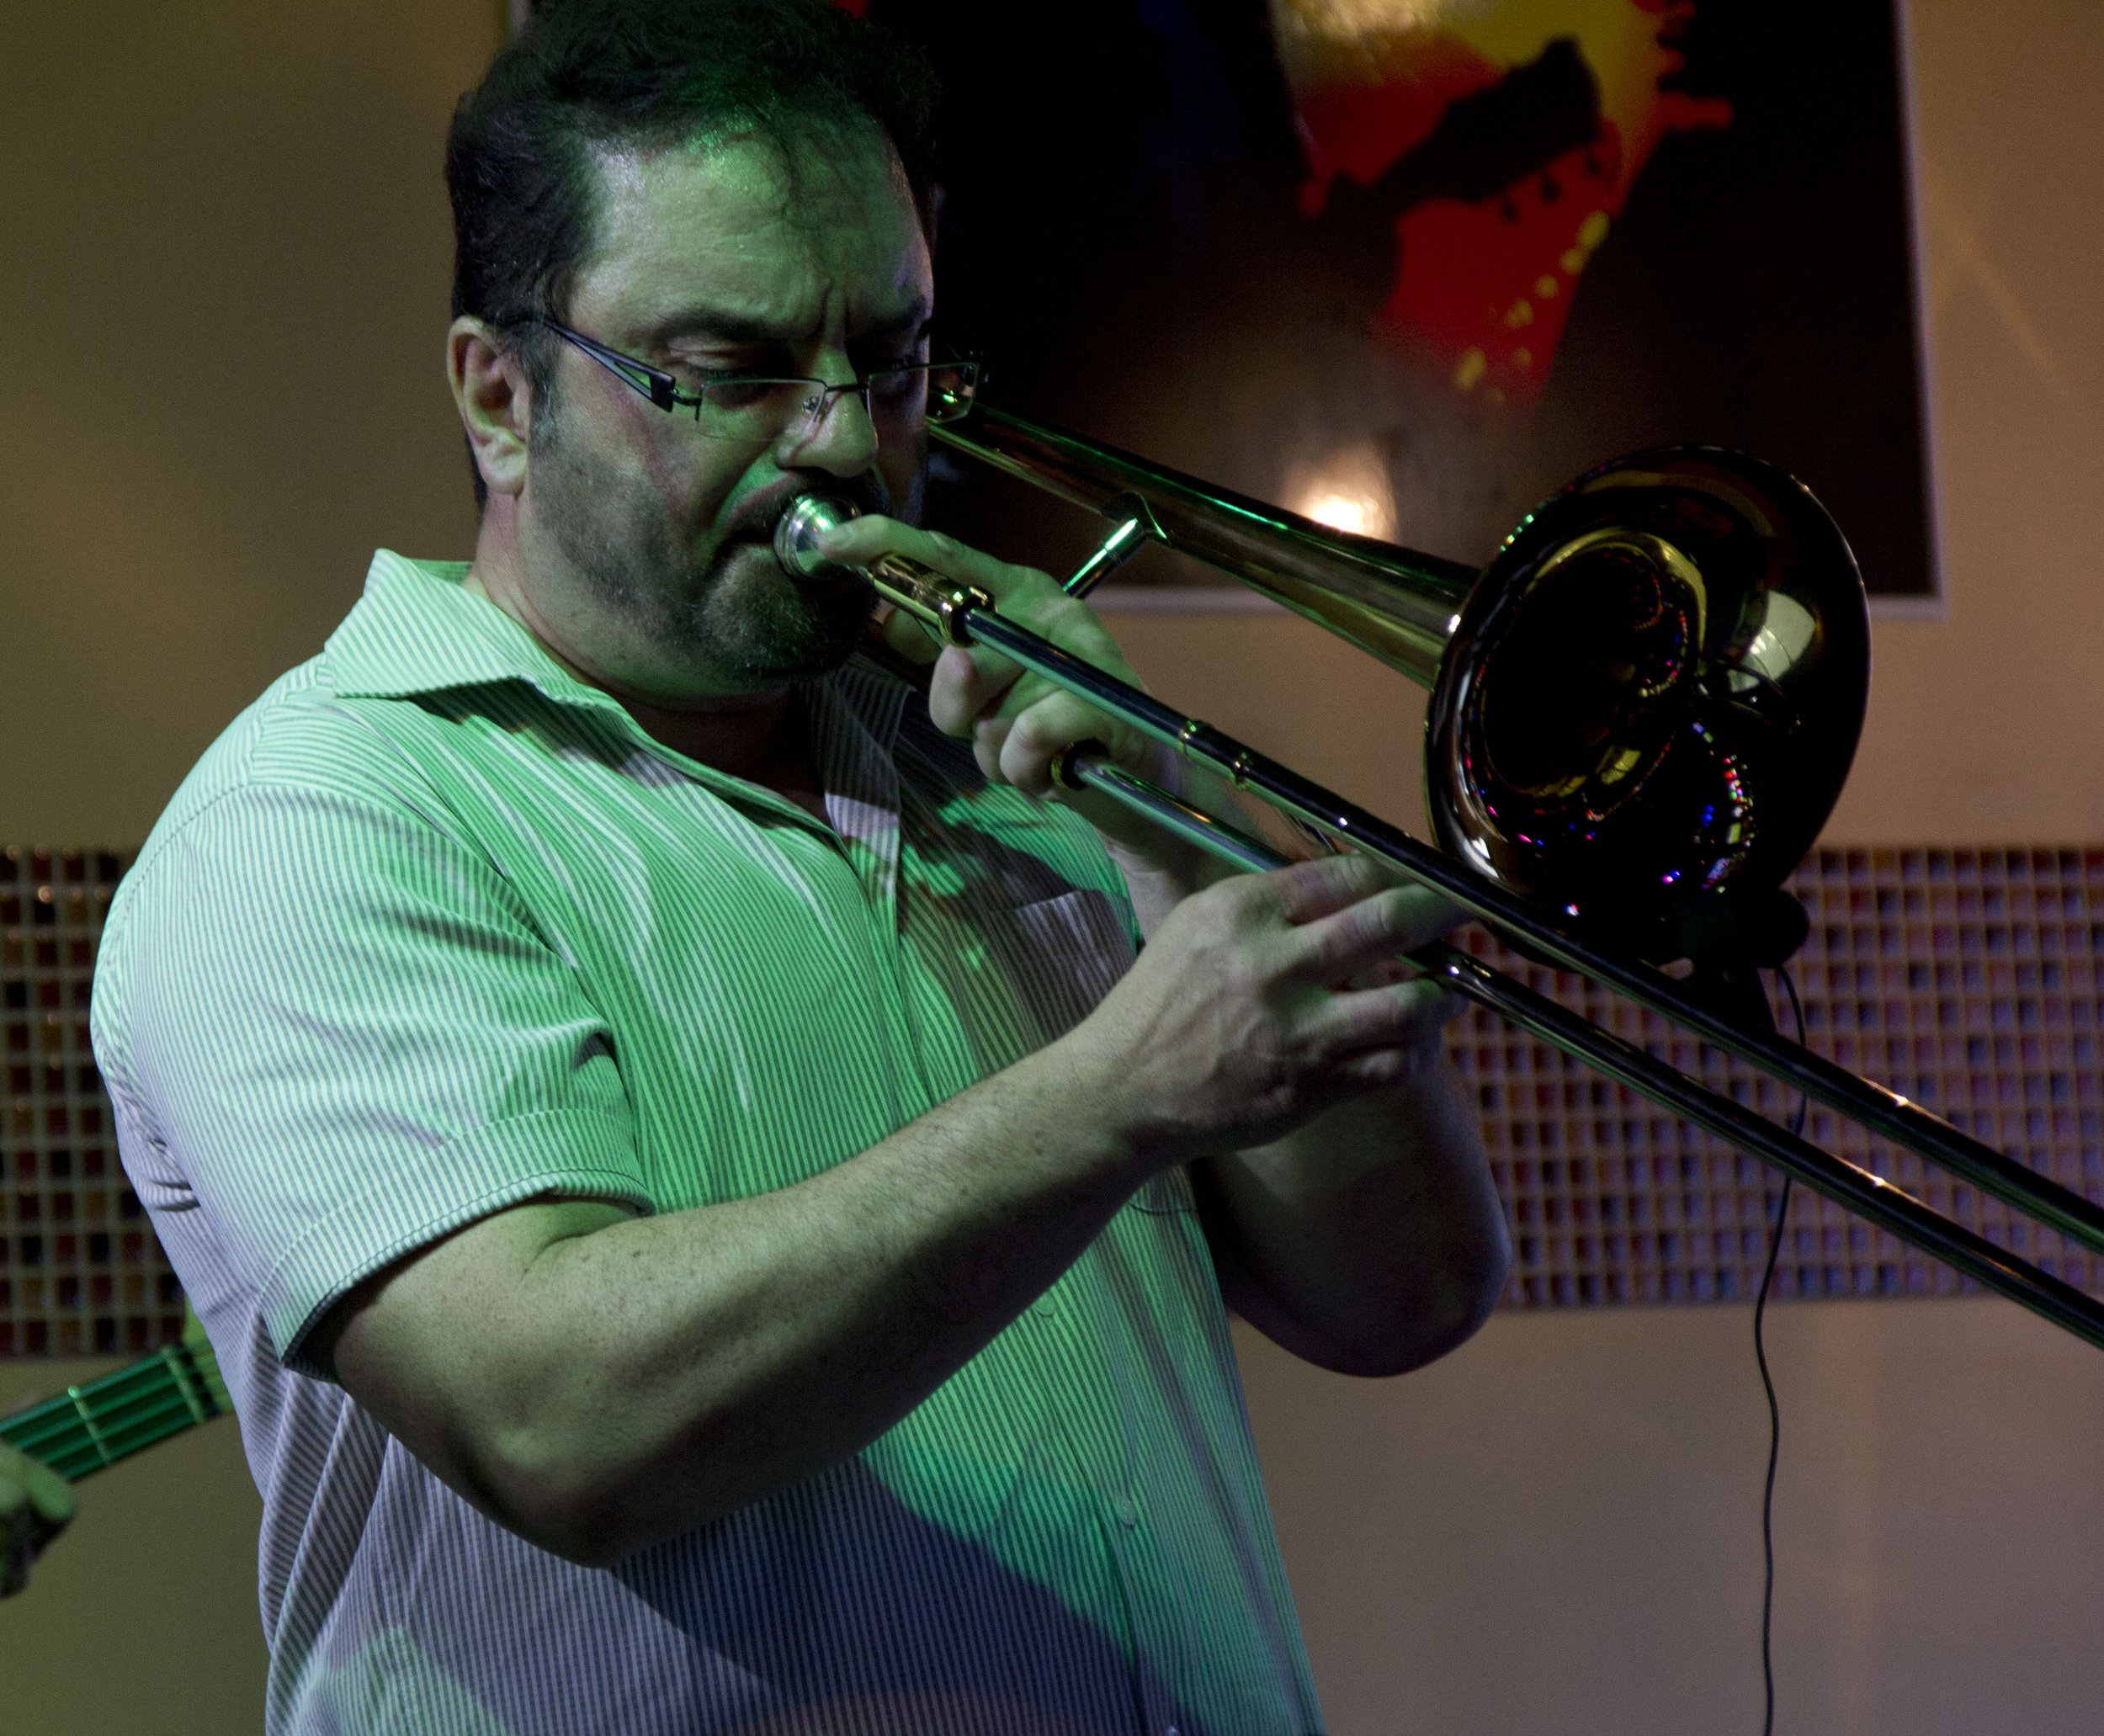 Rob is a veteran horn player who has played in various ensembles throughout the GTA. He performs in all genres of music, but is principally drawn to Jazz and Jazz-Rock Fusion.